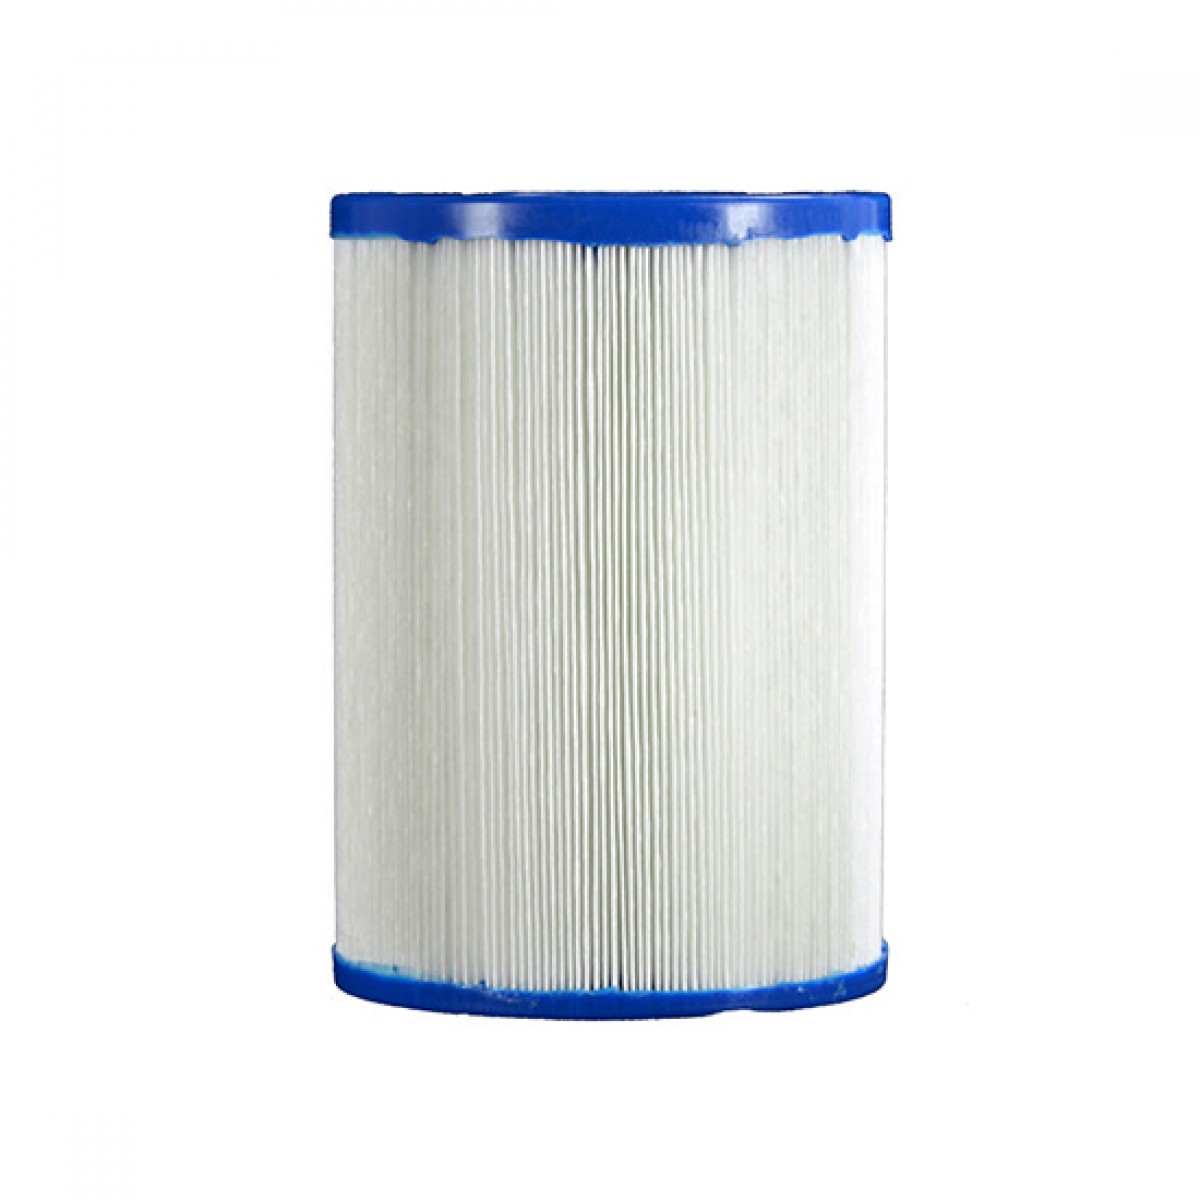 Jacuzzi Triclops Pool Filter Cartridge Spa Filter Pleatco Spa Filter